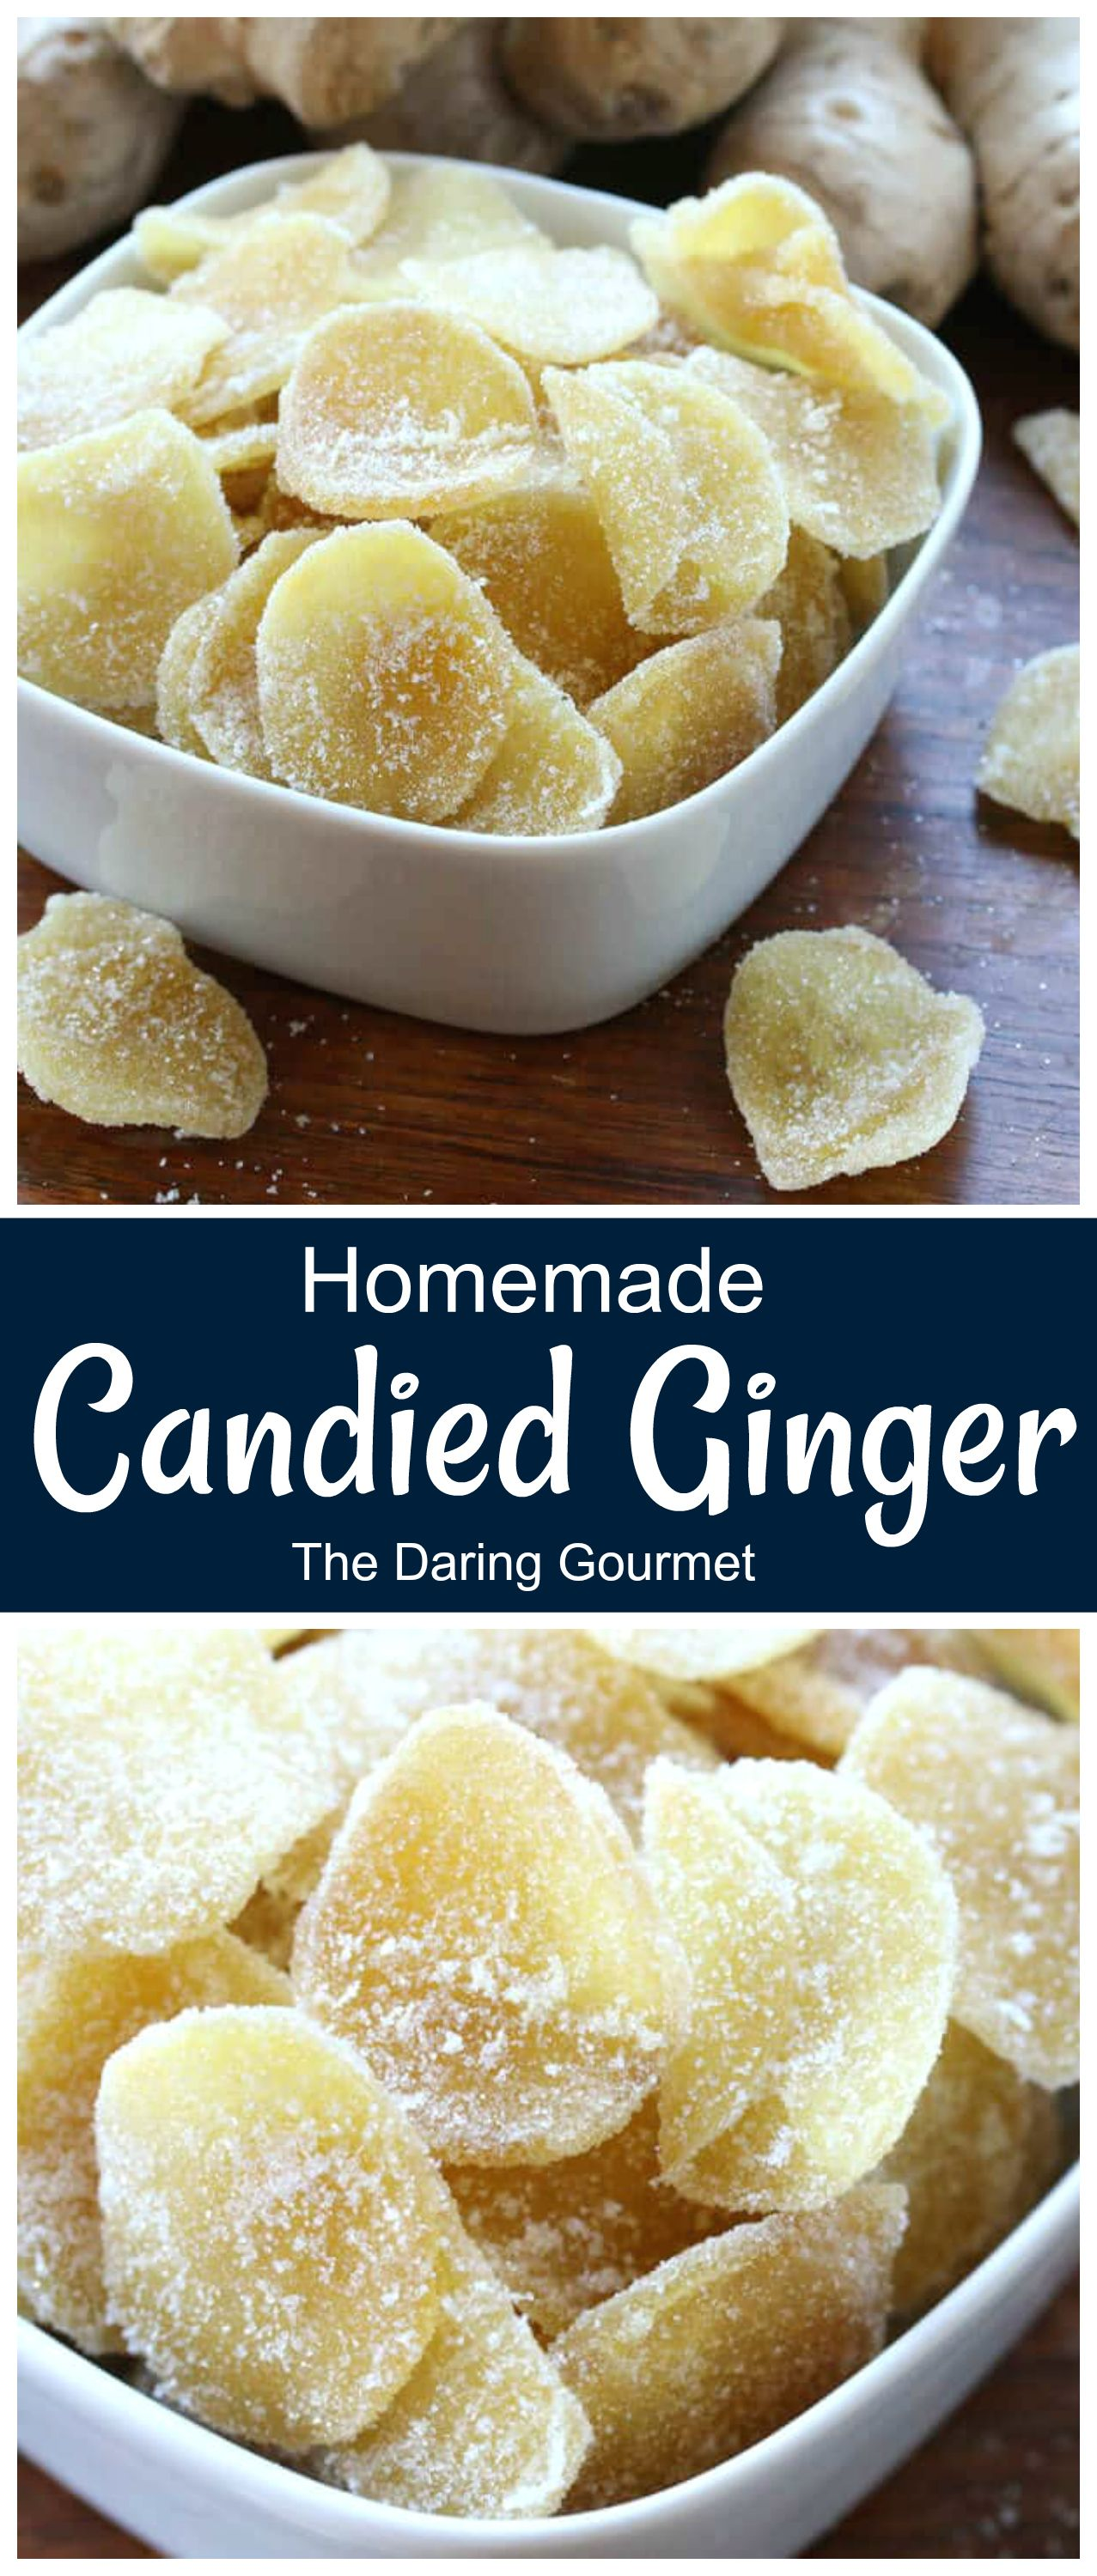 How To Make Candied Ginger Recipe Candied Ginger Food Ginger Recipes